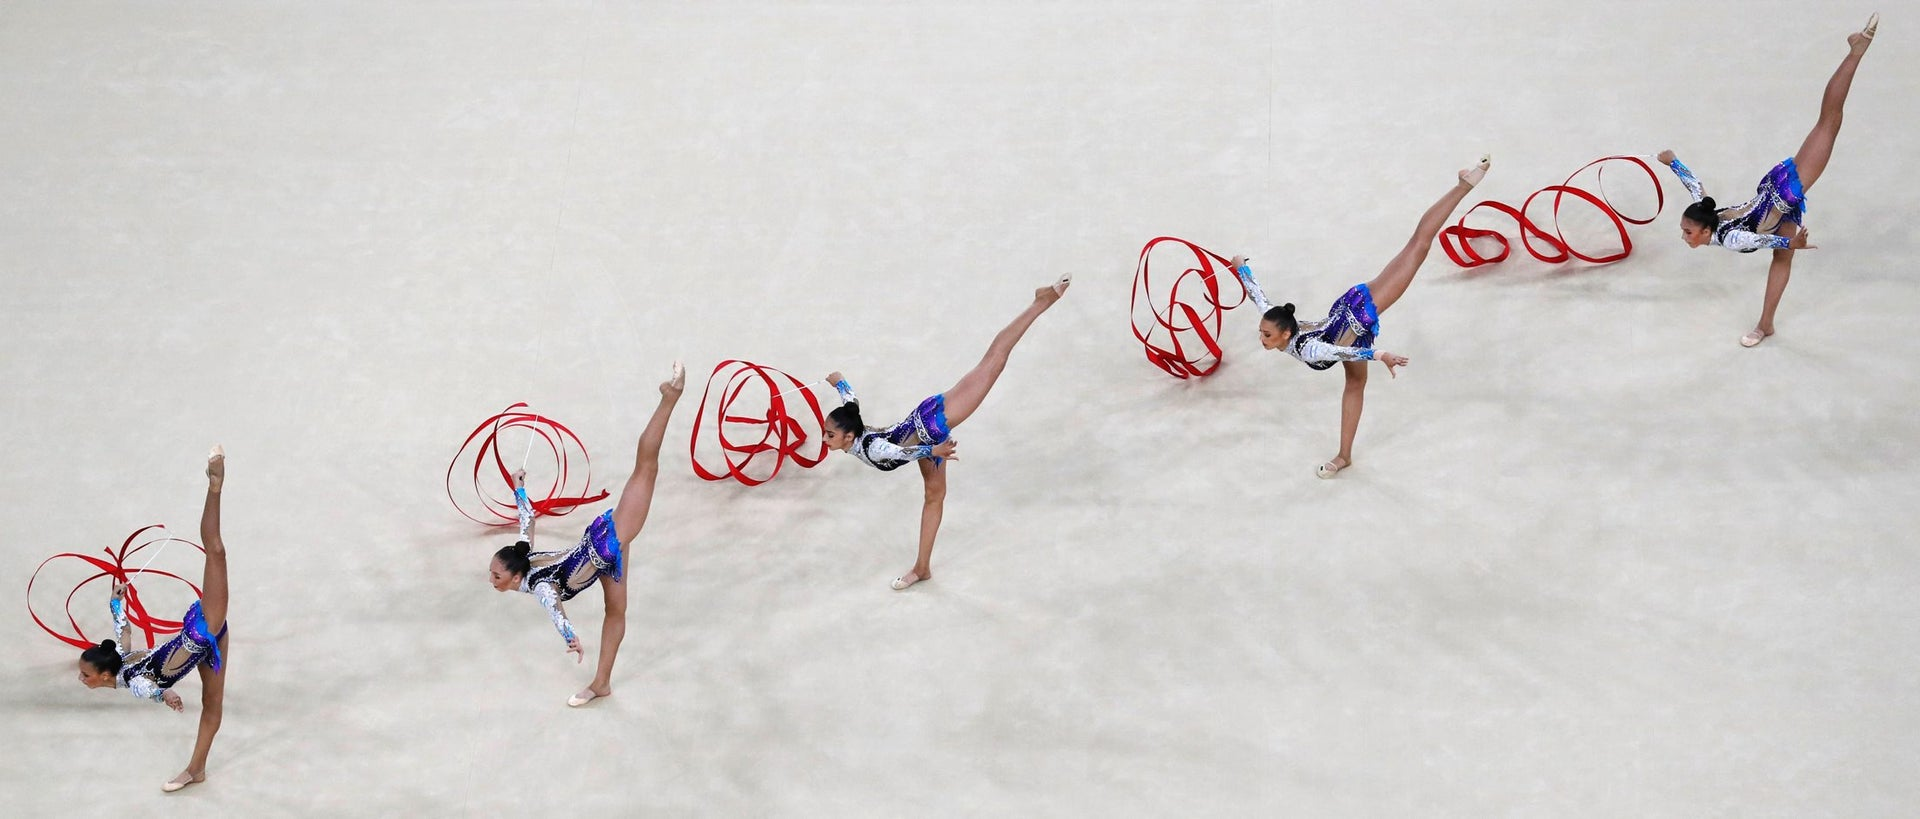 Israel's team compete in the group all-around qualifying event of the Rhythmic Gymnastics at the Olympic Arena during the Rio 2016 Olympic Games in Rio de Janeiro on August 20, 2016.